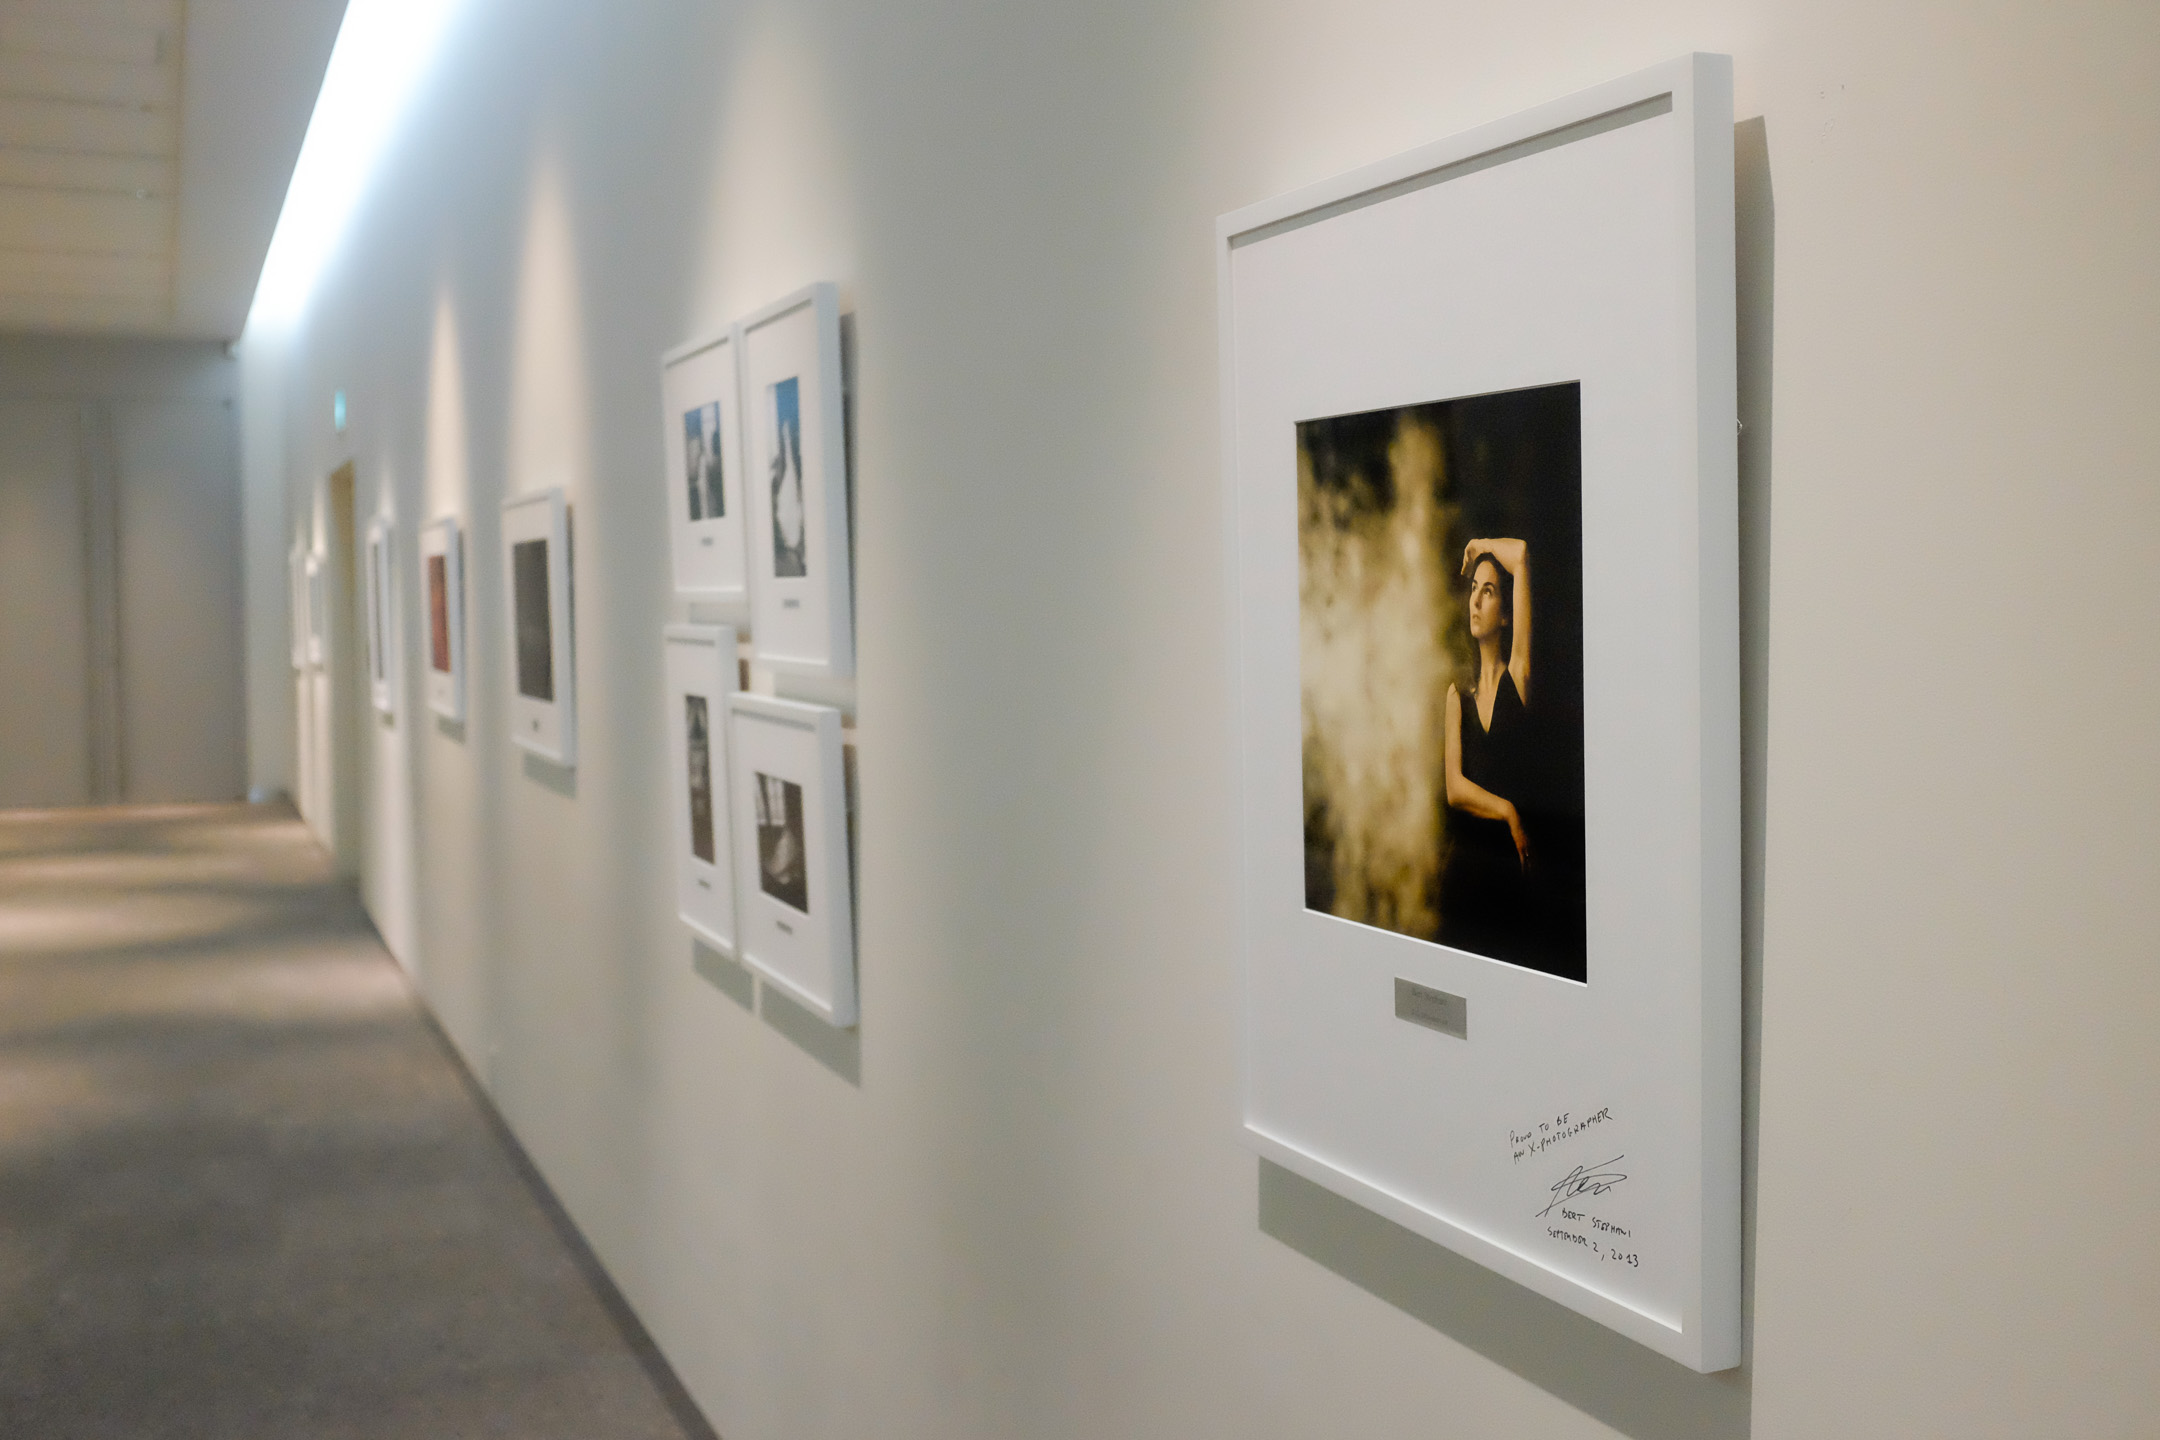 Fujifilm X100S - 1/600 - f/2.8 - iso6400 To our big surprise we saw some of our own images presented in the hallways of Fuji HQ